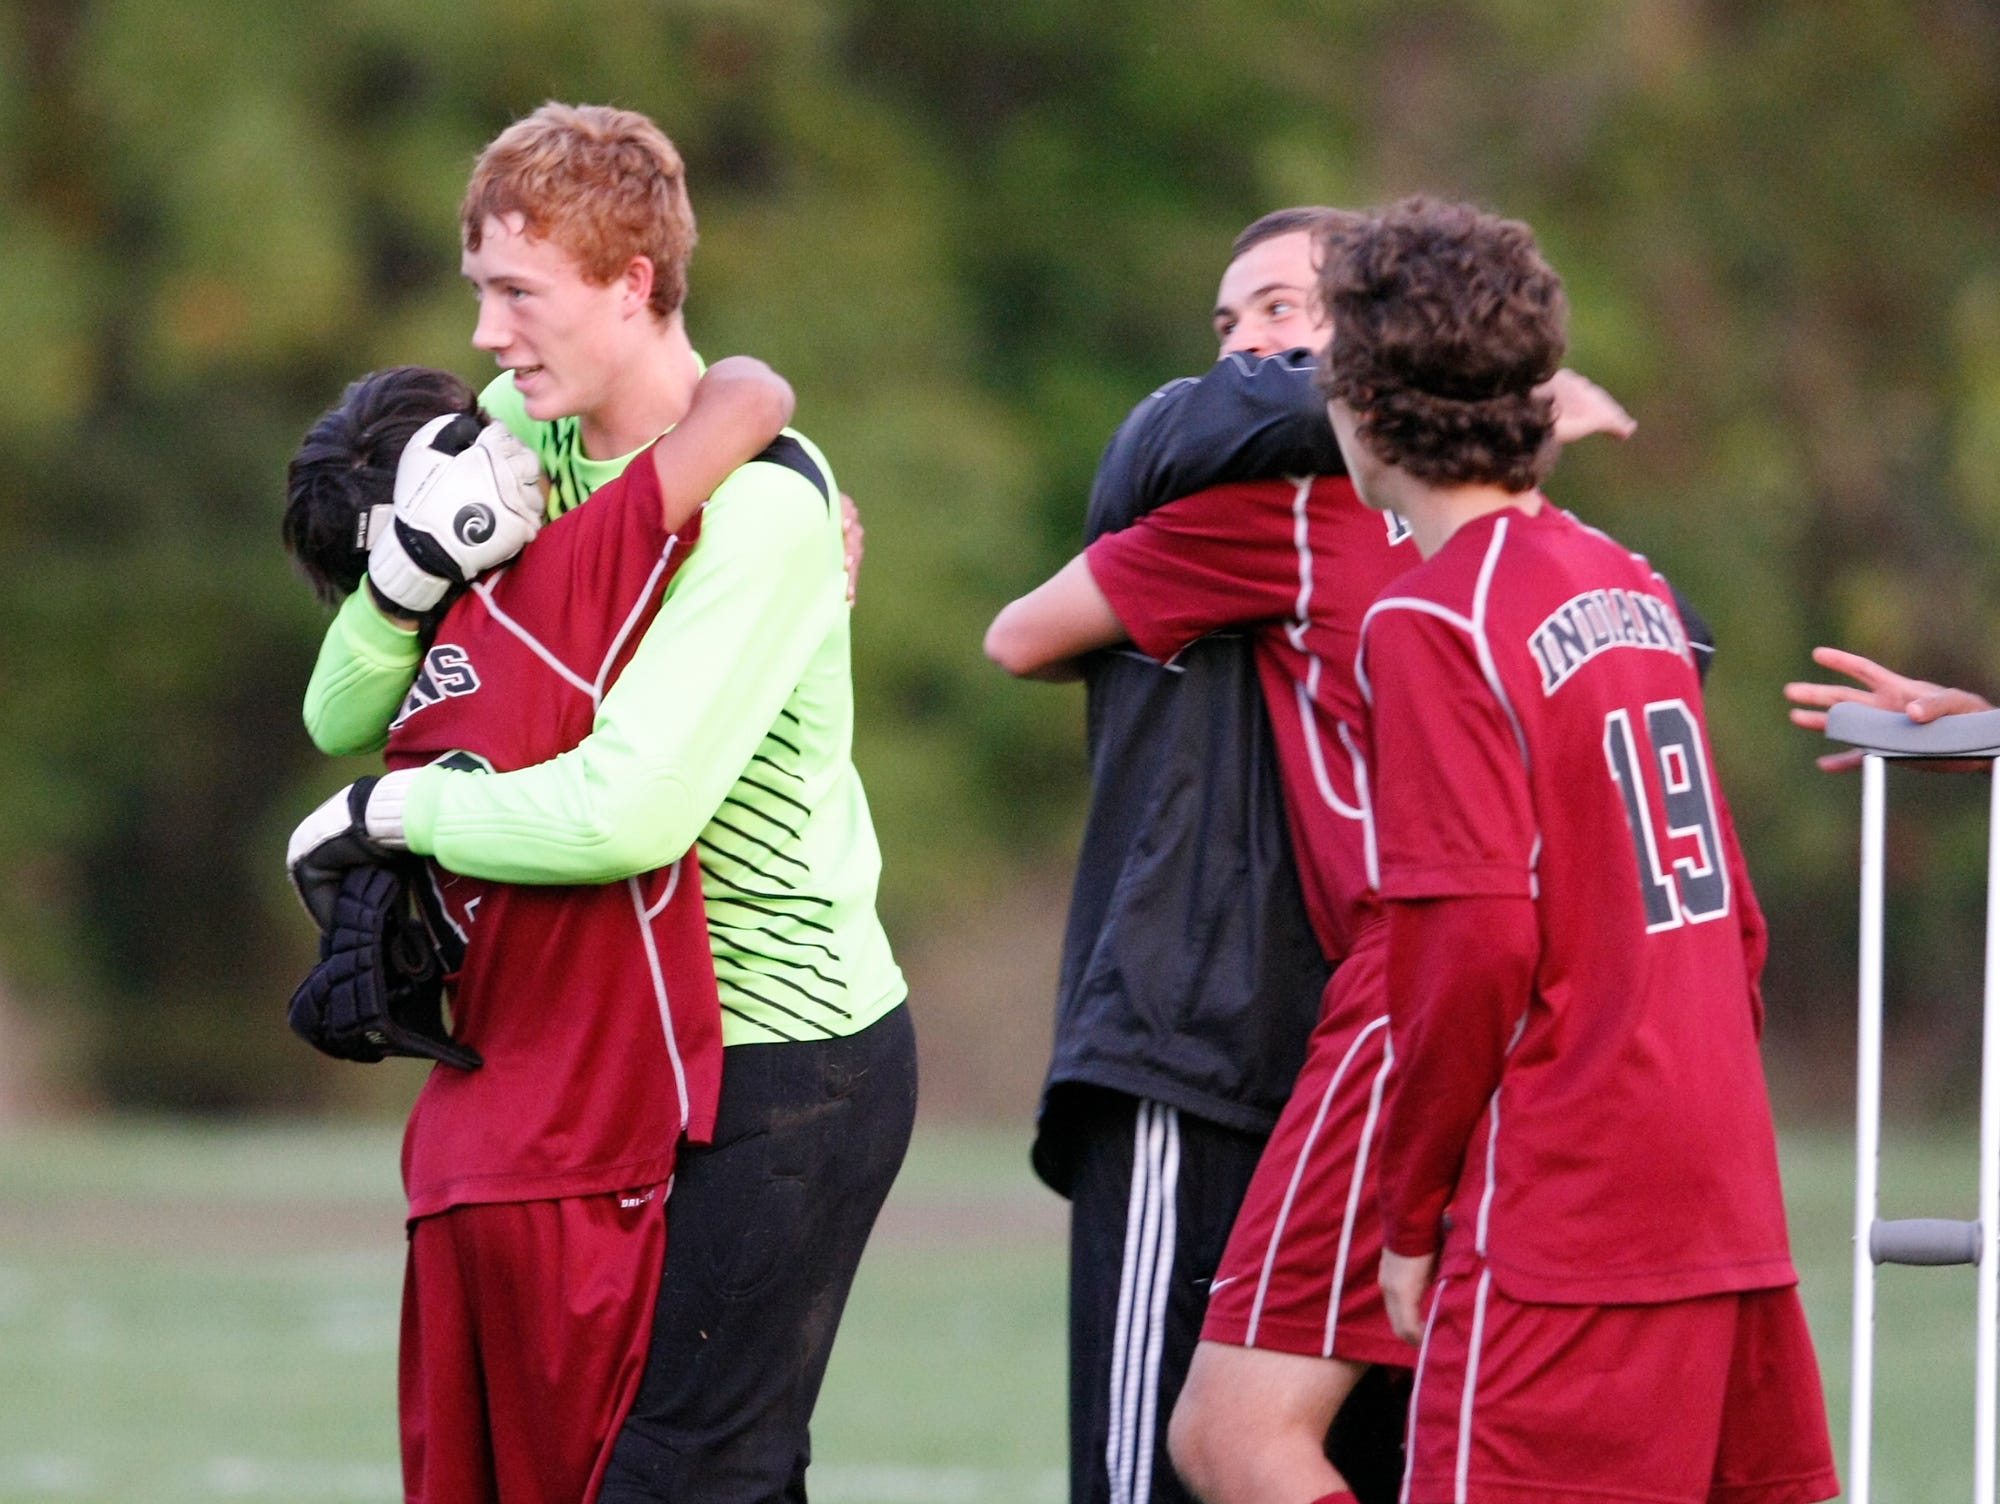 Nyack goalie Karl McGinnis, center, and Jose Gagliardi (13) celebrate their victory over Nanuet during a boys soccer game at Nanuet High School on Wednesday, Oct. 21, 2015.